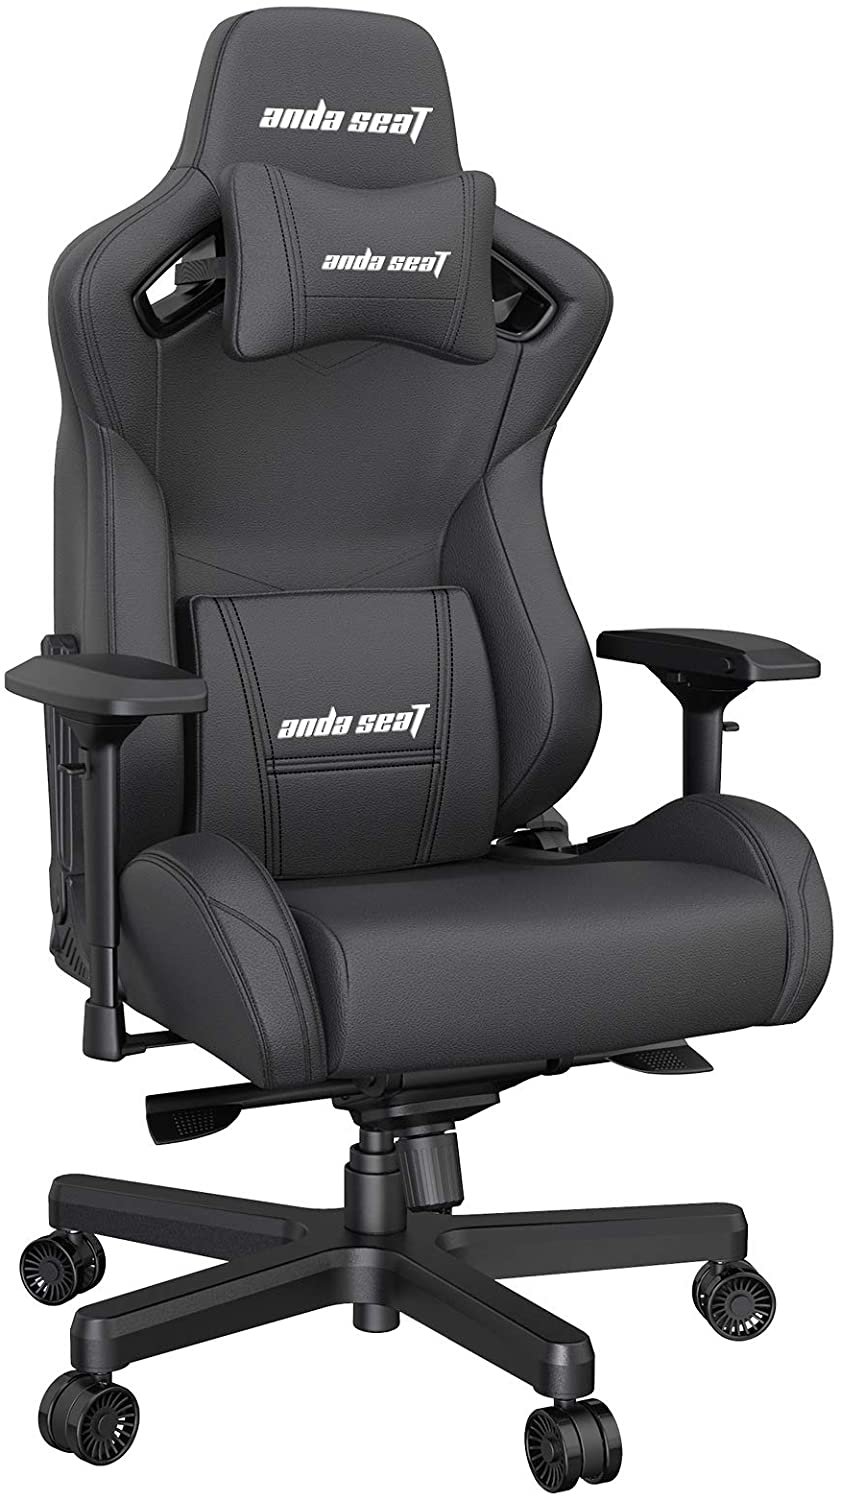 Anda Seat Gaming Chair